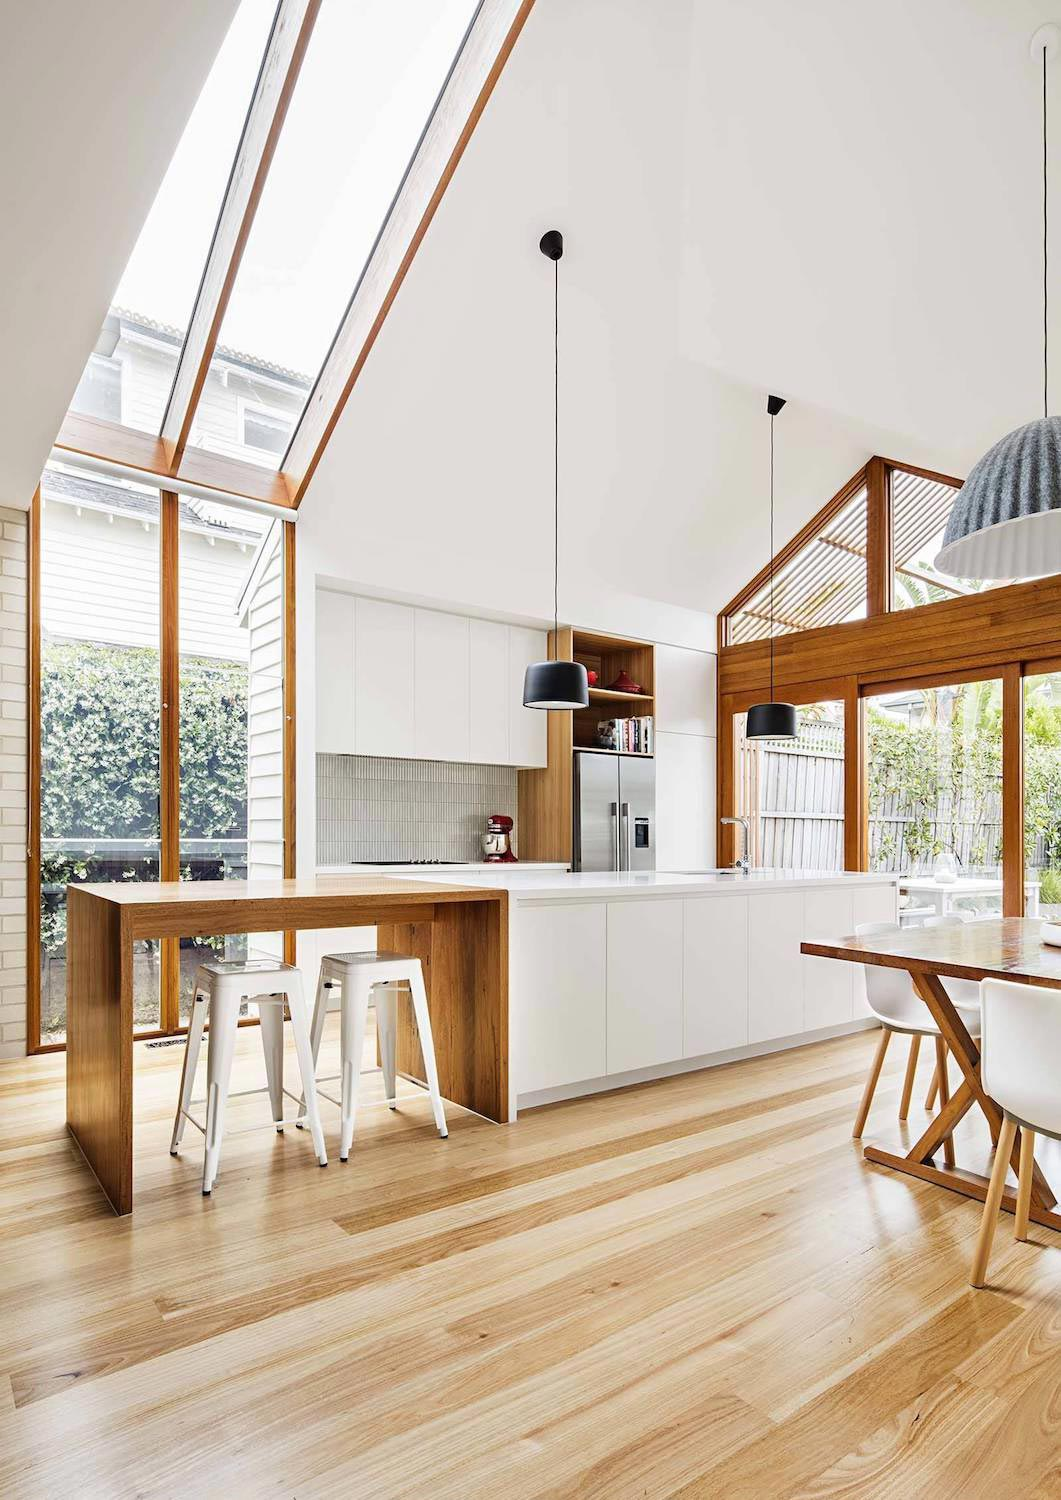 Edwardian timber cottage in Sandringham gets an spacious, light filled, open plan renovation at the back